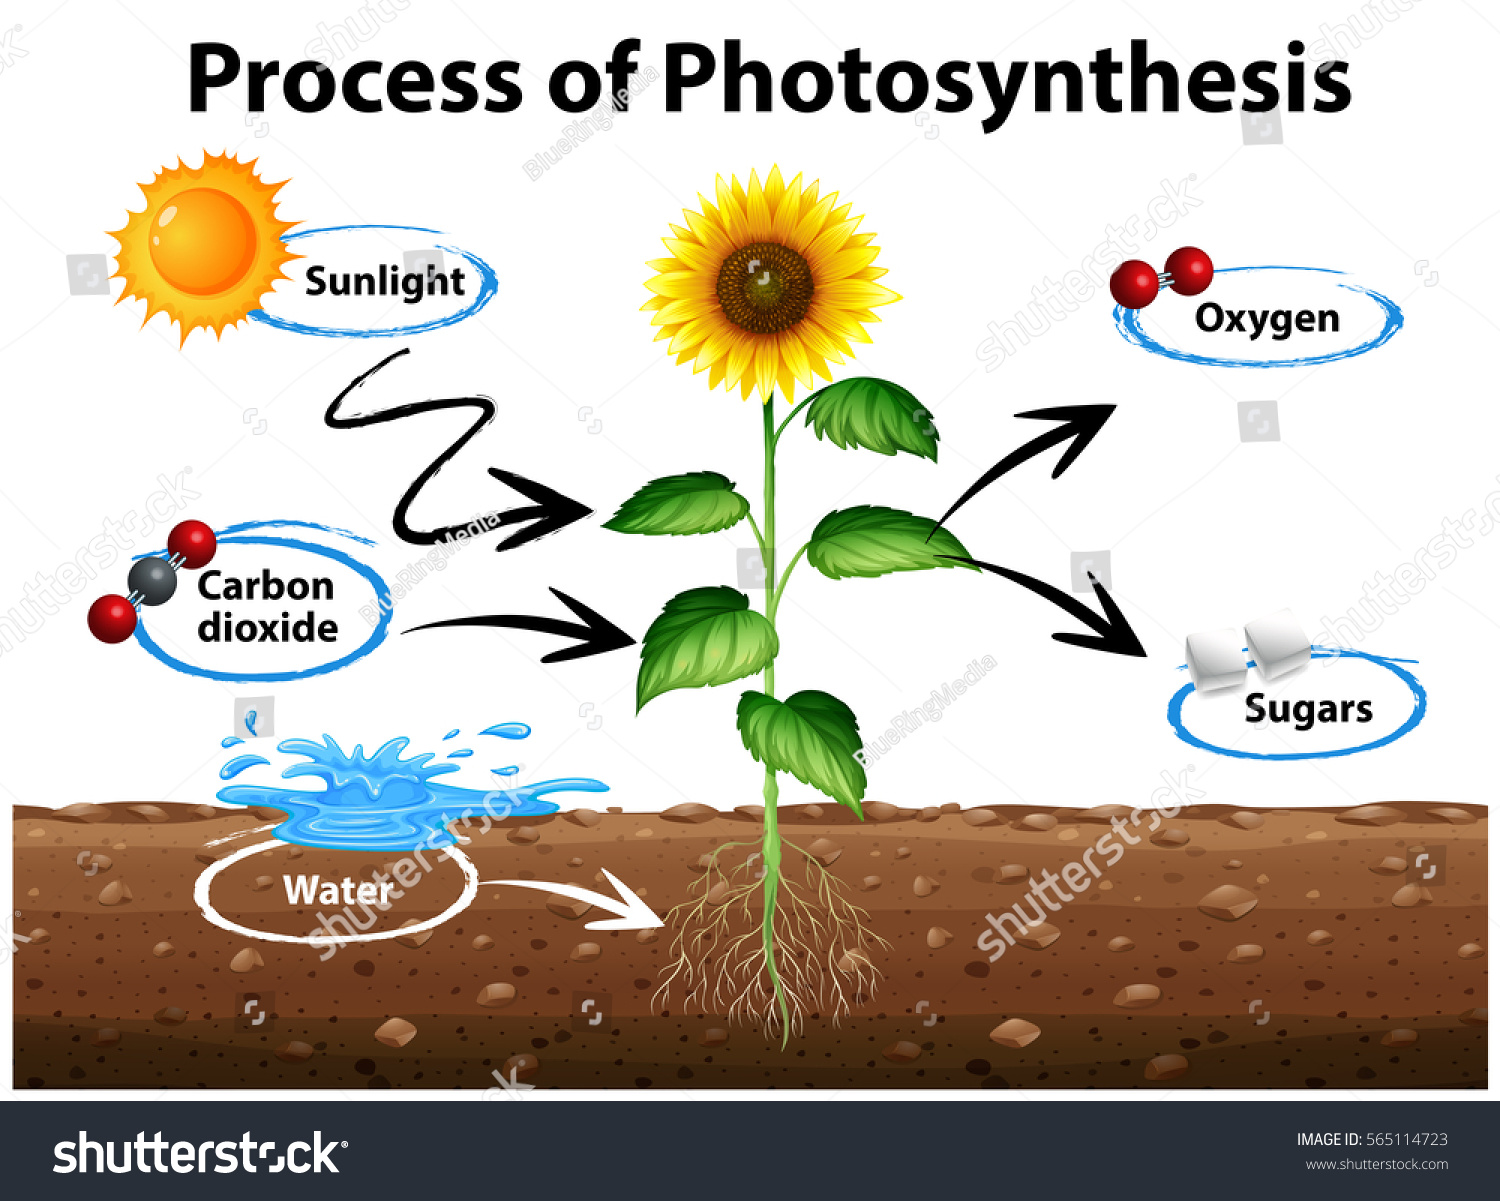 Diagram Showing Sunflower Process Photosynthesis Illustration Stock ...